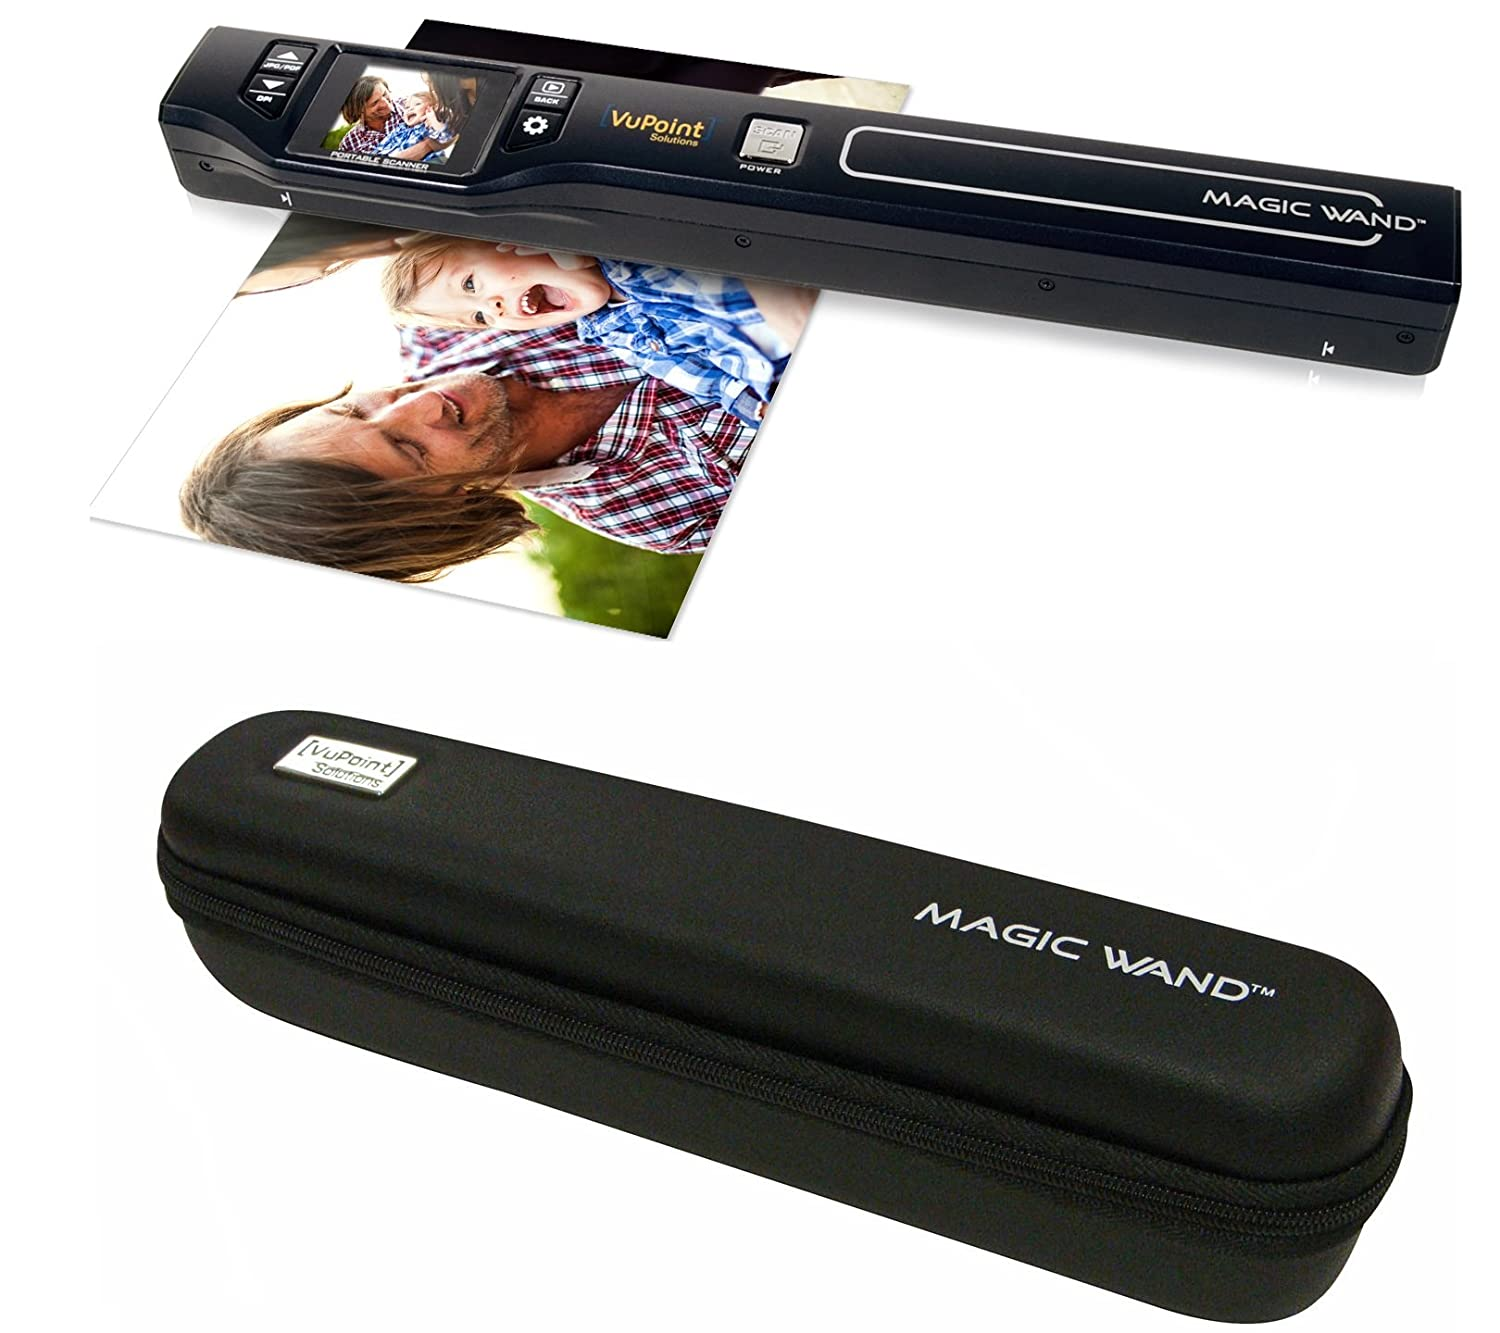 Vupoint Solutions PDS-ST470 Magic Wand IV Portable Scanner